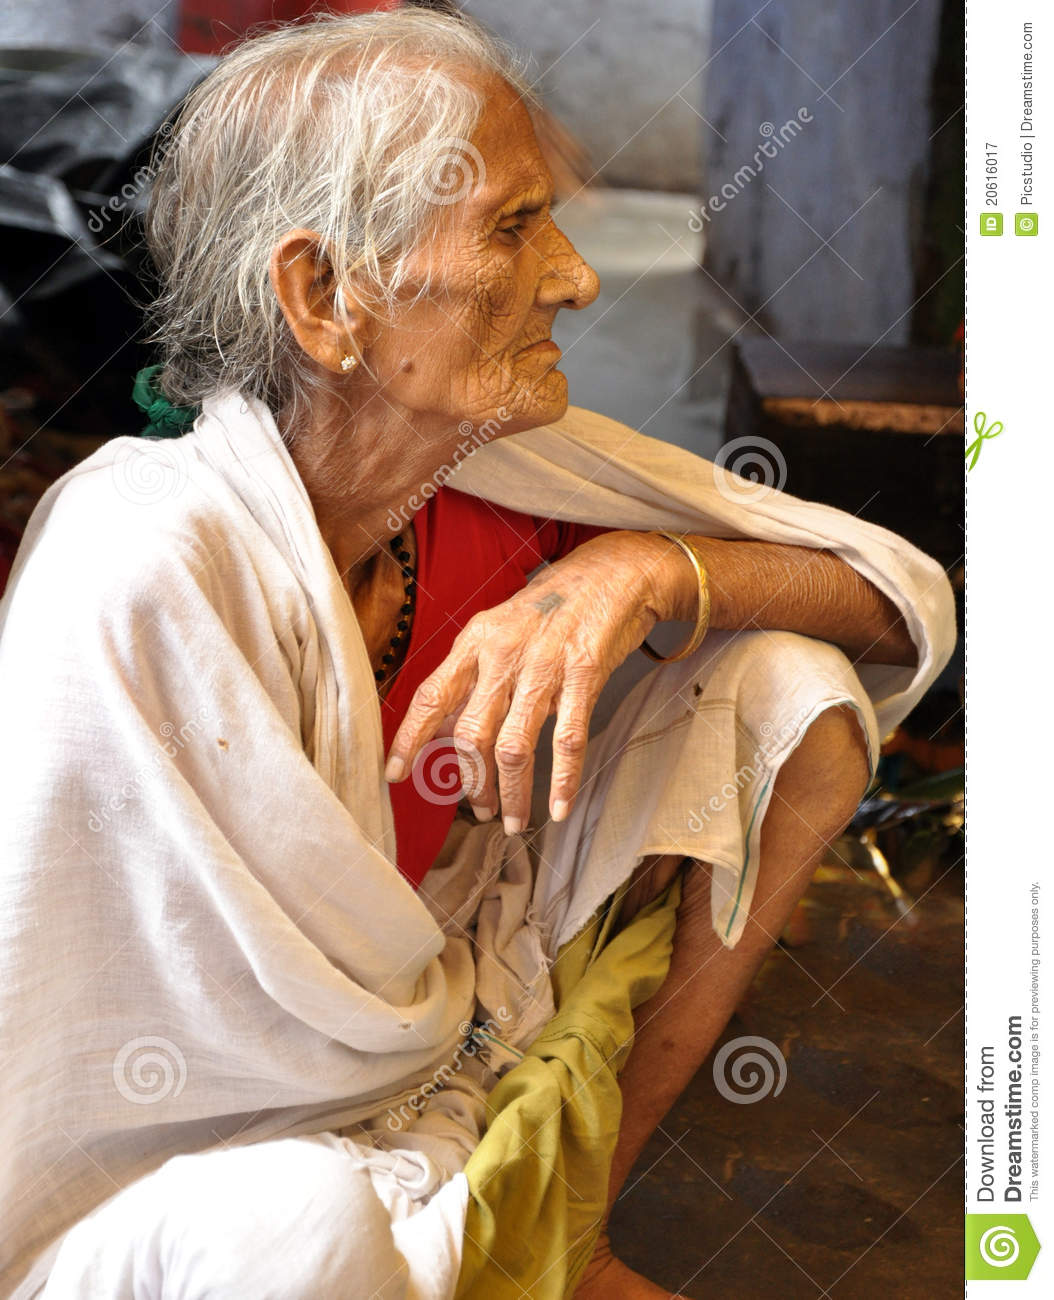 Old Indian Lady Stock Image Image Of Woman, Clothes -8776